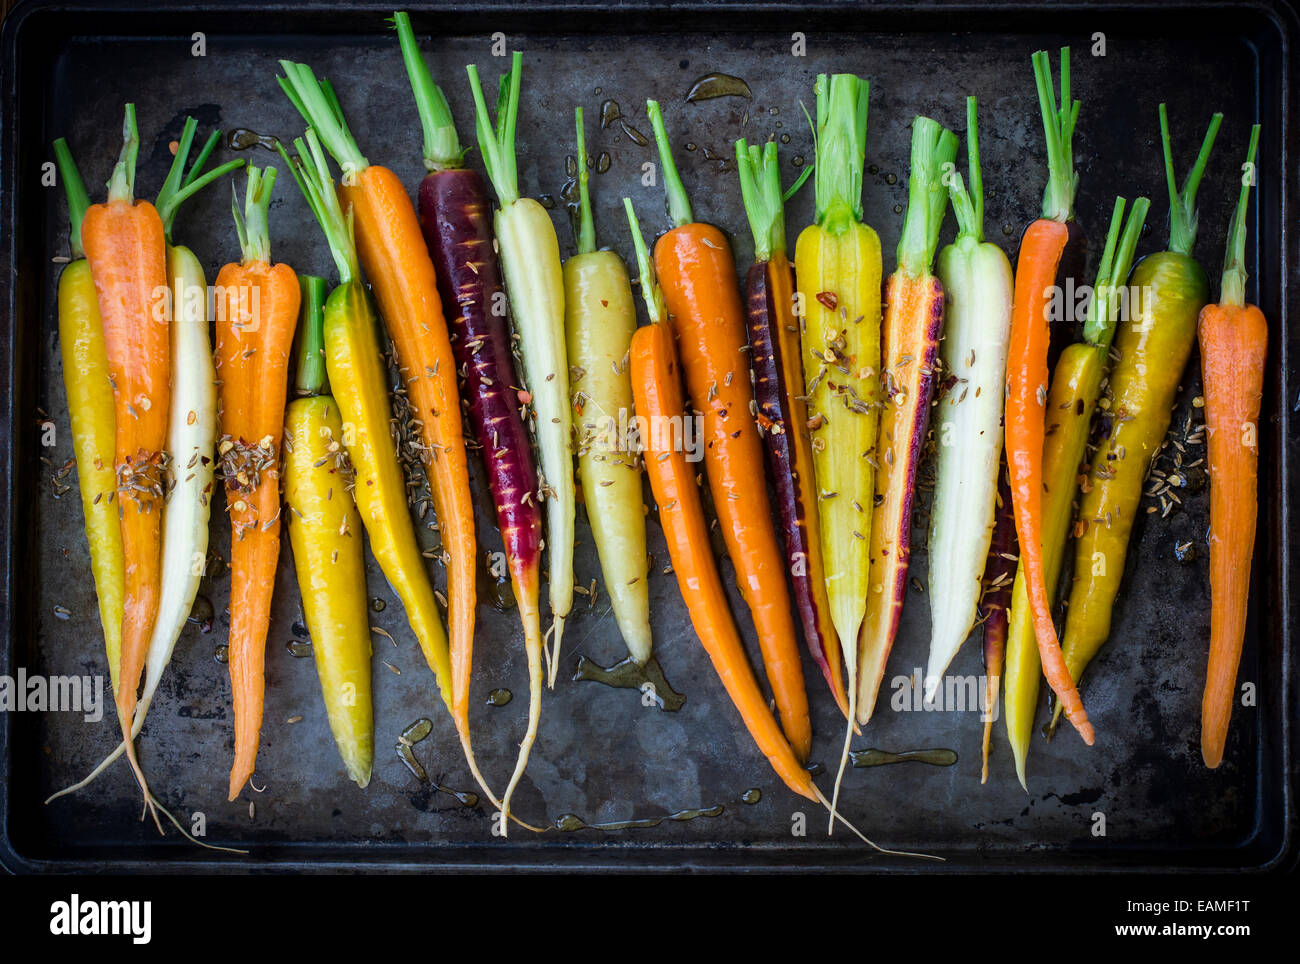 Rainbow Carrots with Olive Oil and Spices on Dark Vintage Pan - Stock Image